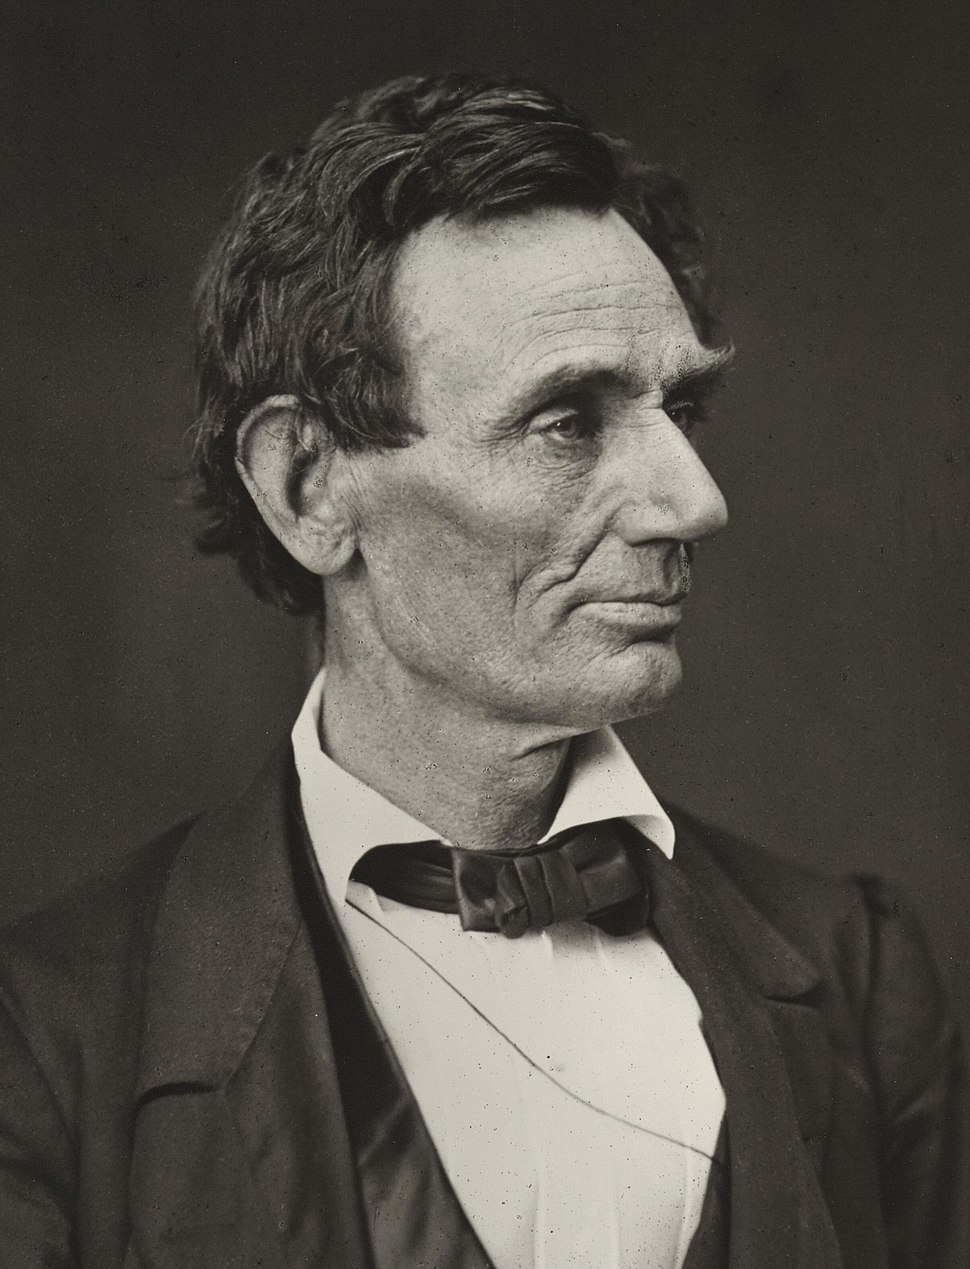 Abraham Lincoln O-26 by Hesler, 1860 (cropped)